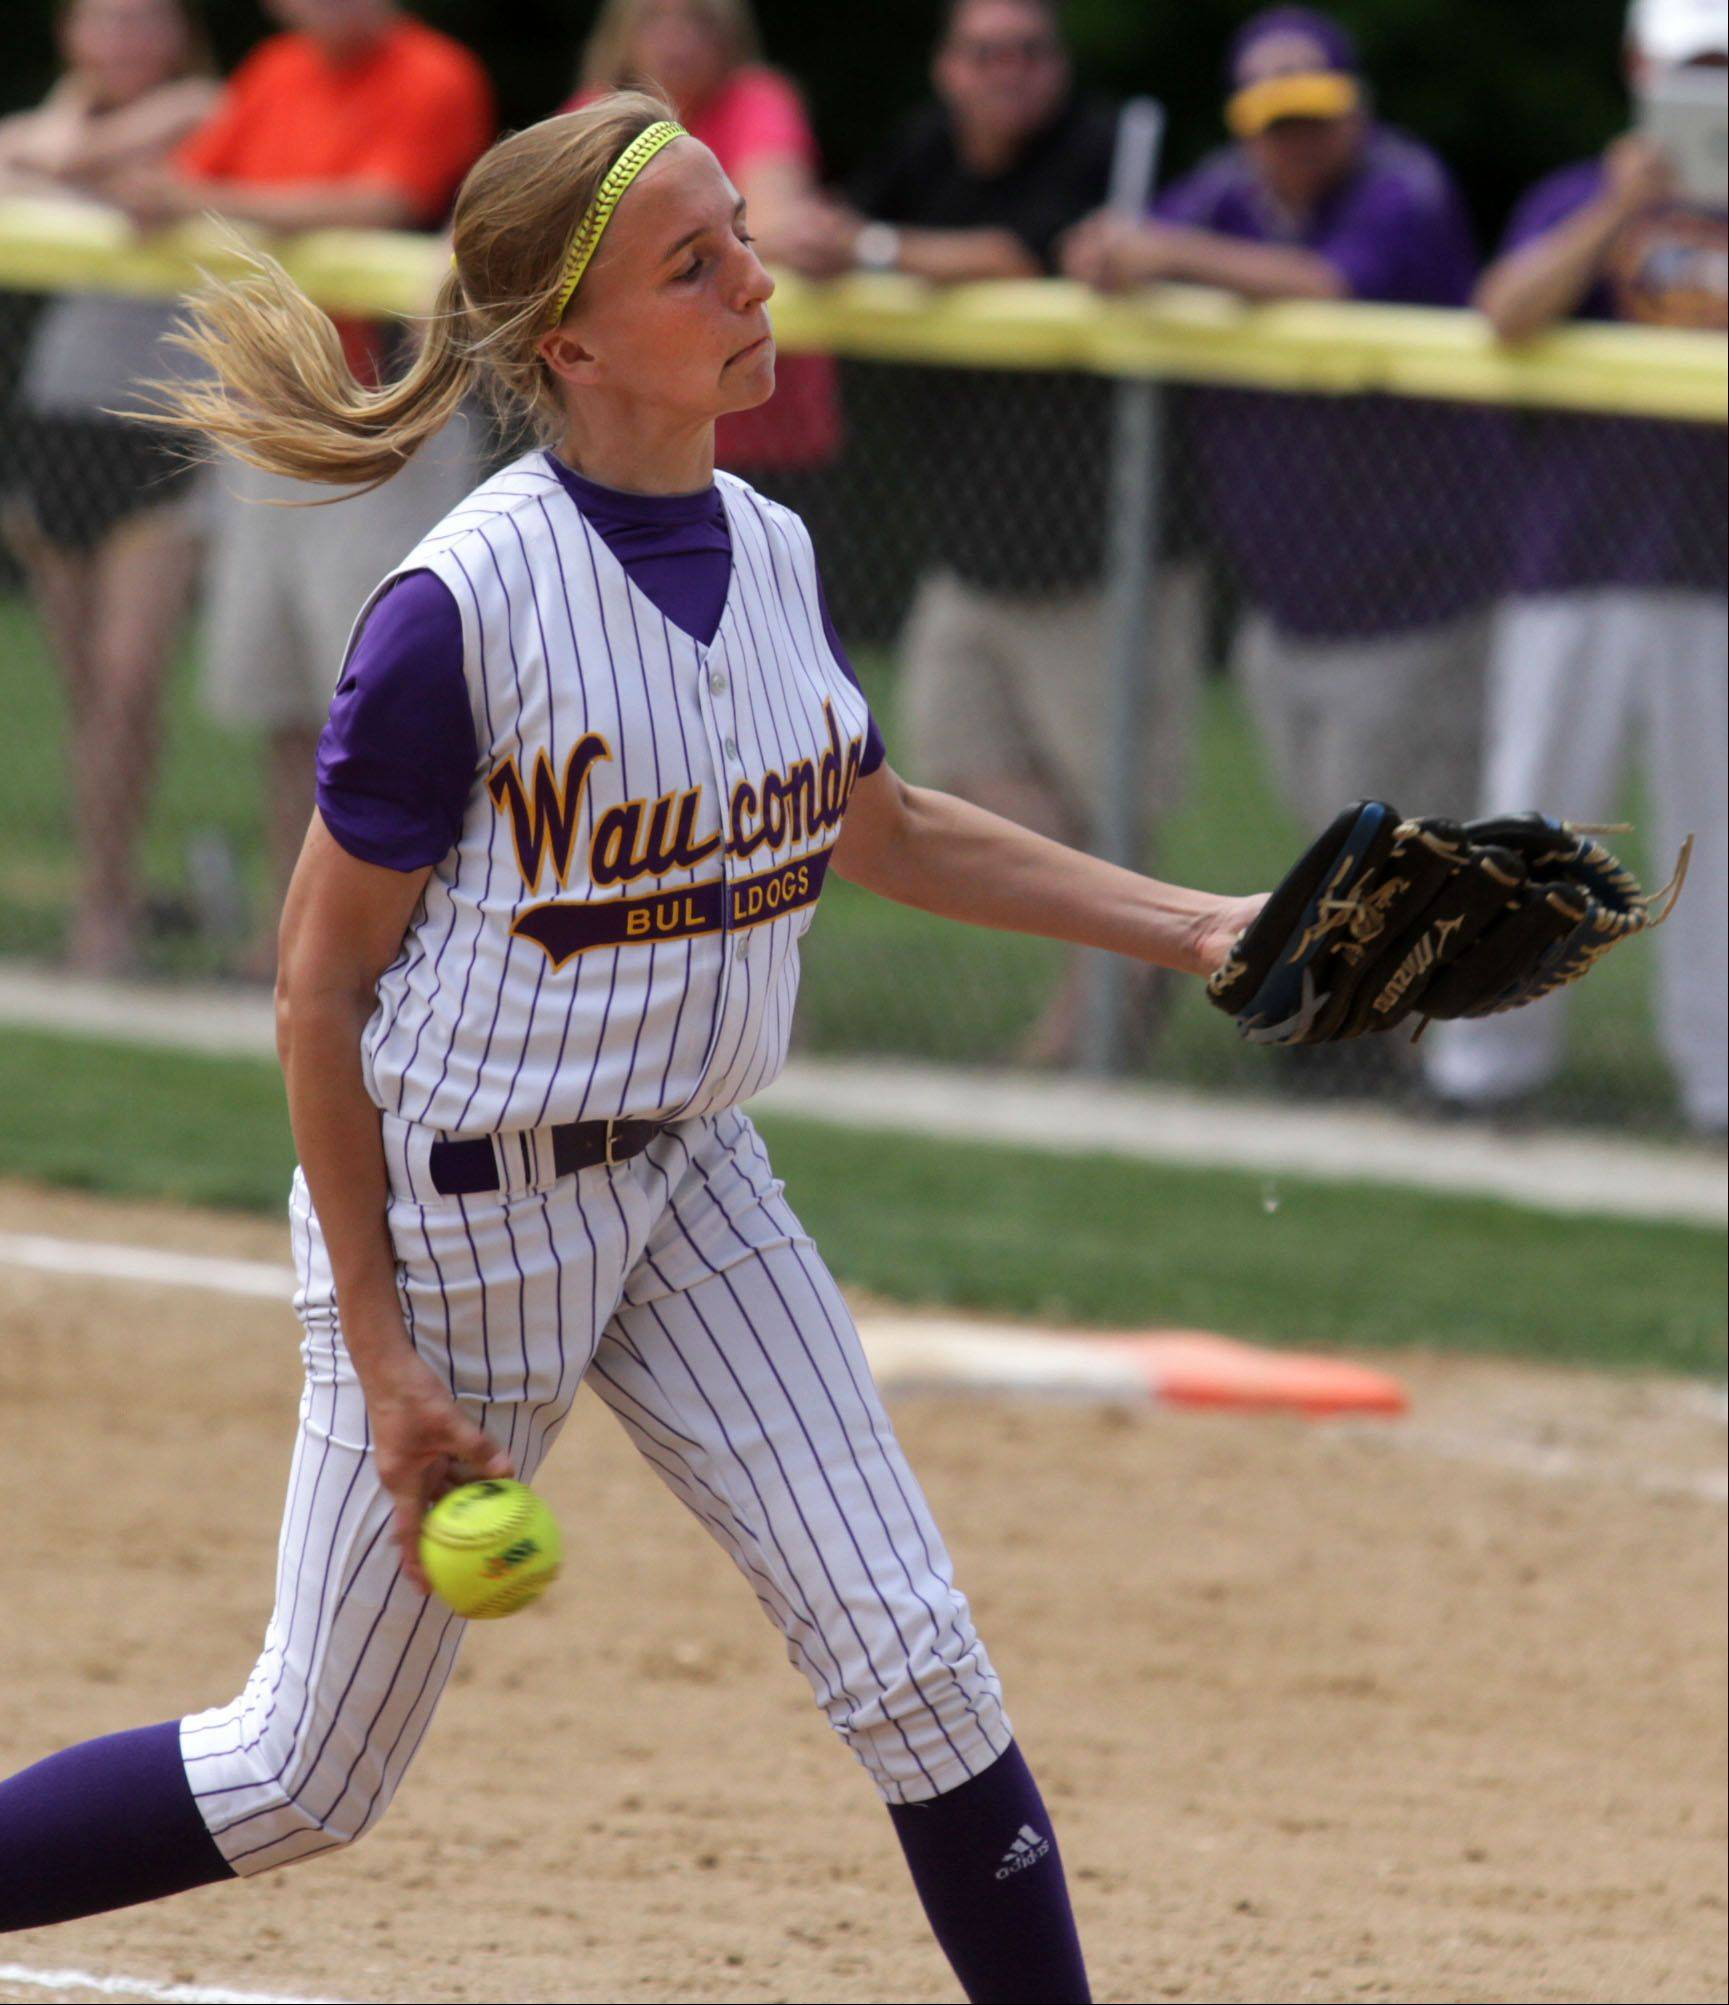 Wauconda's Kayla Wedl delivers against Vernon Hills in Class 3A Grayslake Central sectional championship play Saturday. The Bulldogs won 2-0.